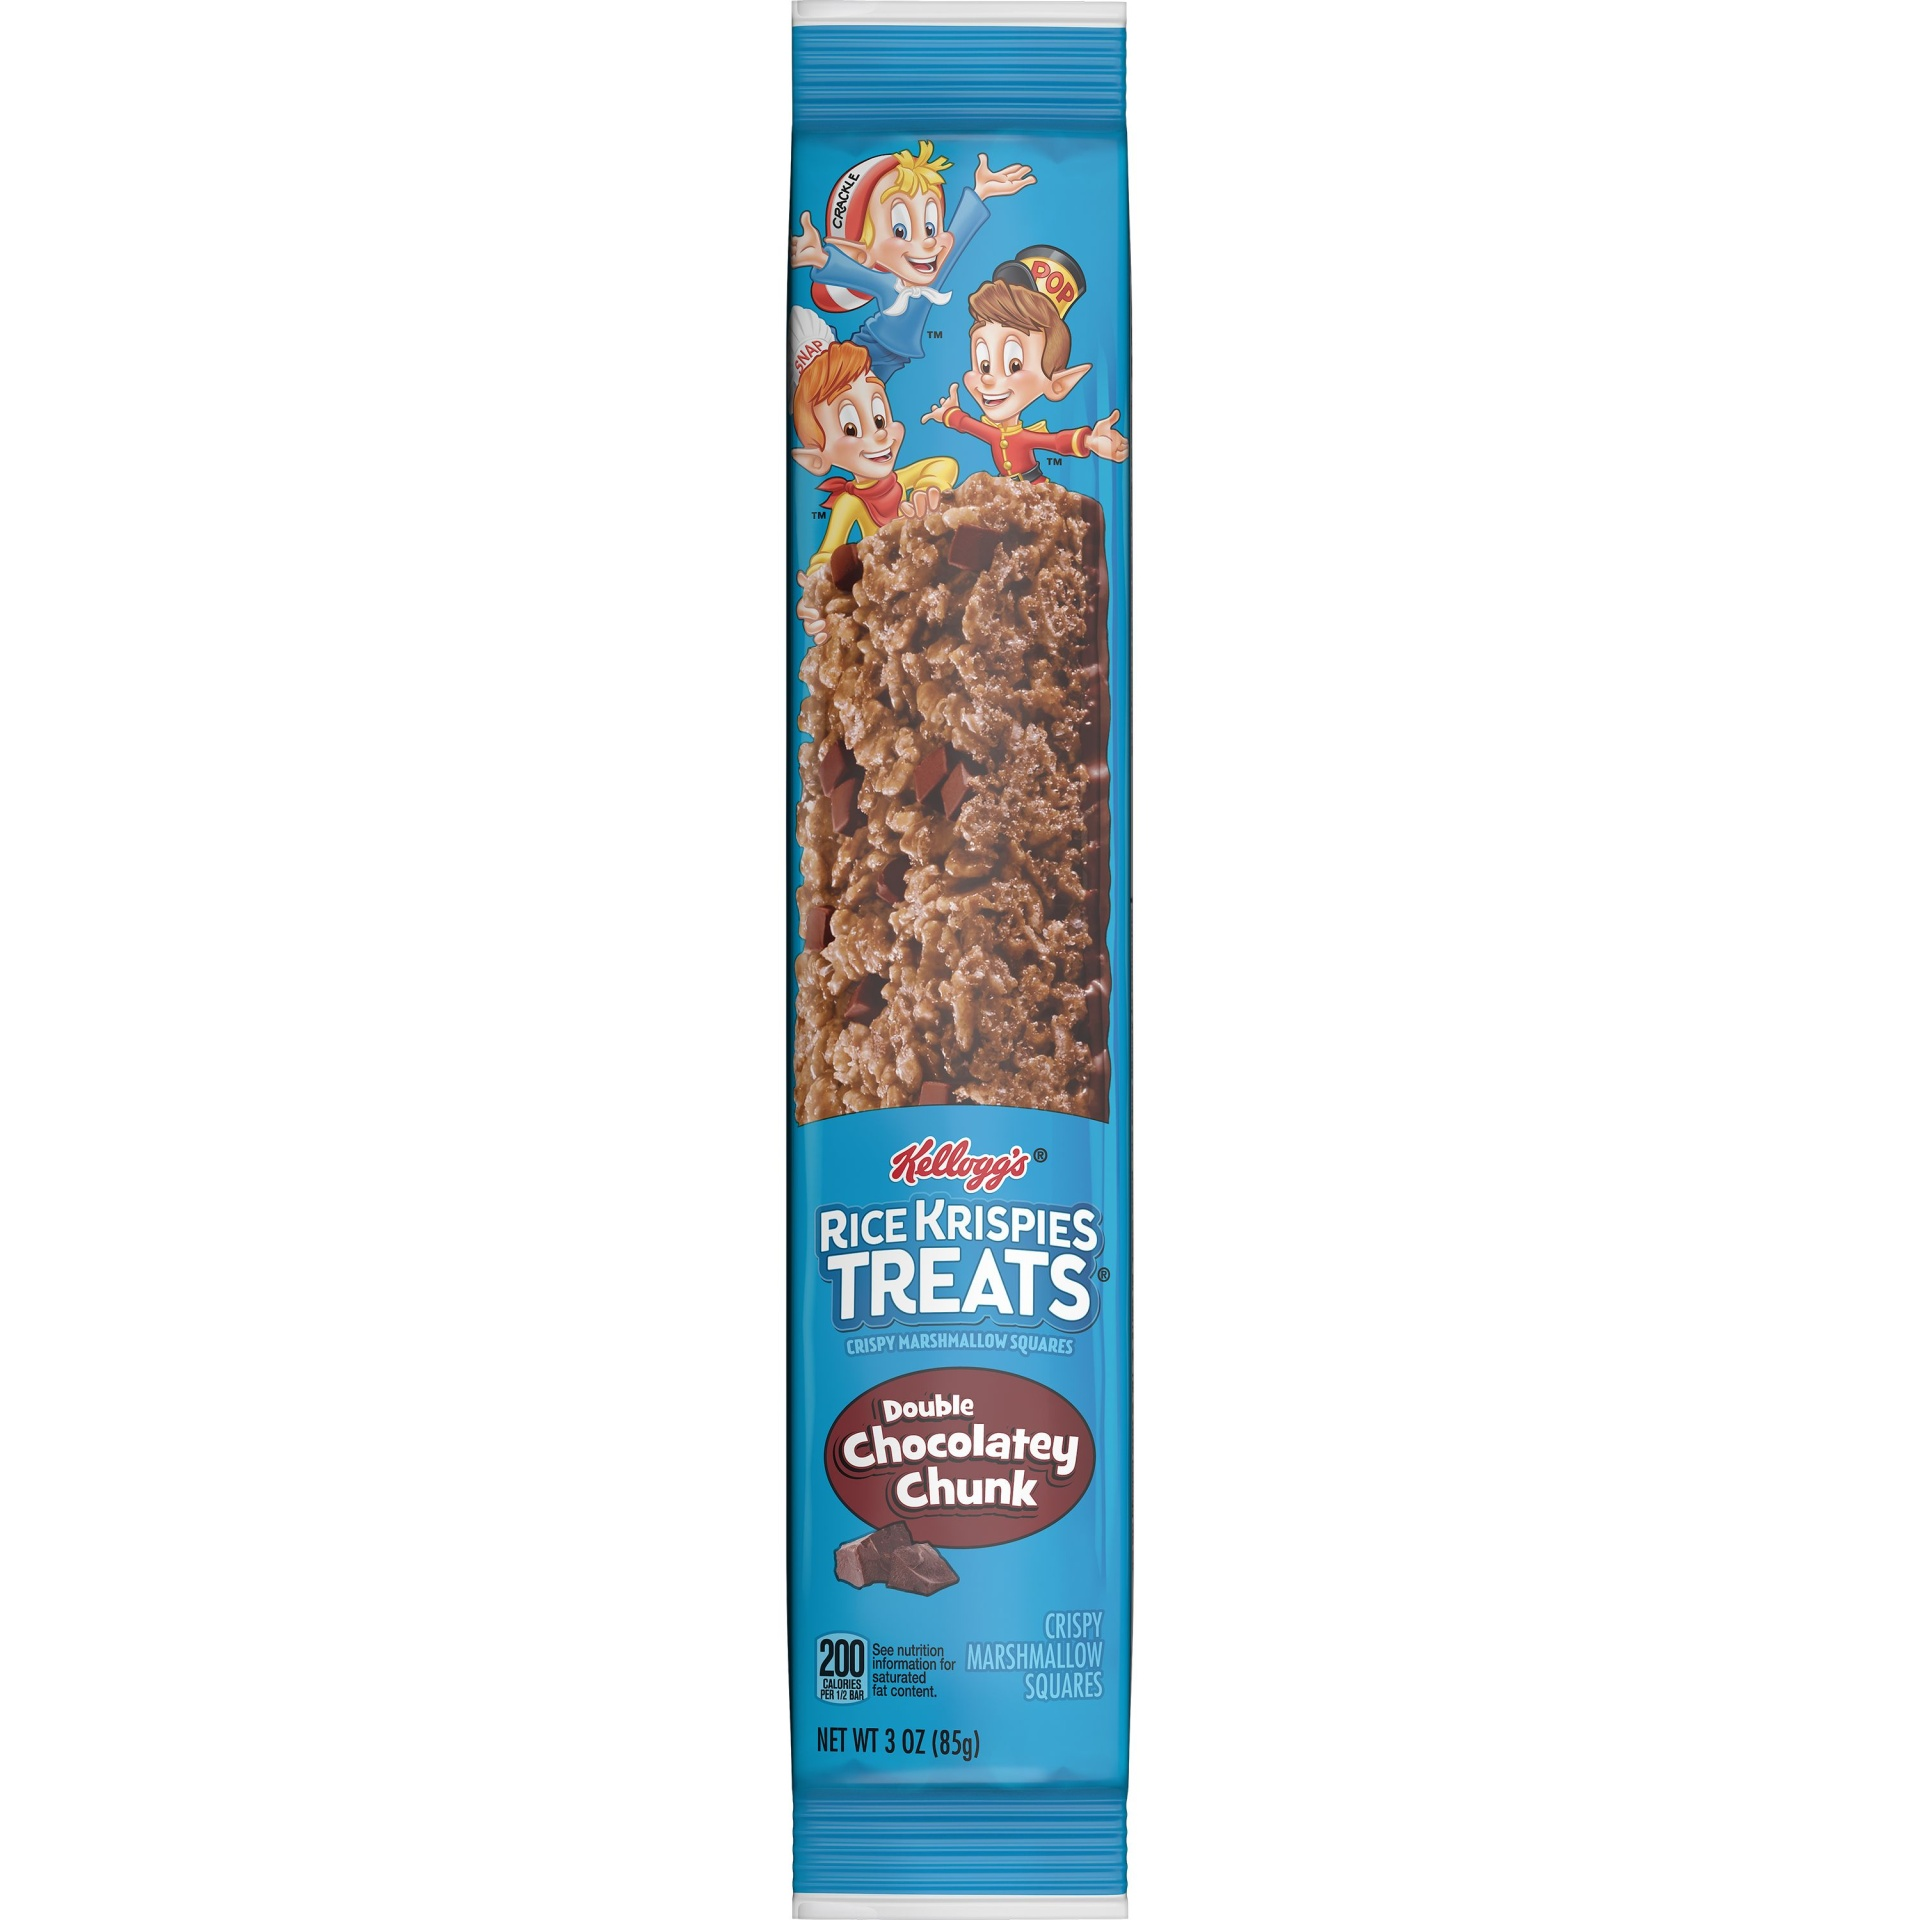 slide 2 of 5, Kellogg's Rice Krispies Treats Double Chocolatey Chunk Crispy Marshmallow Squares,